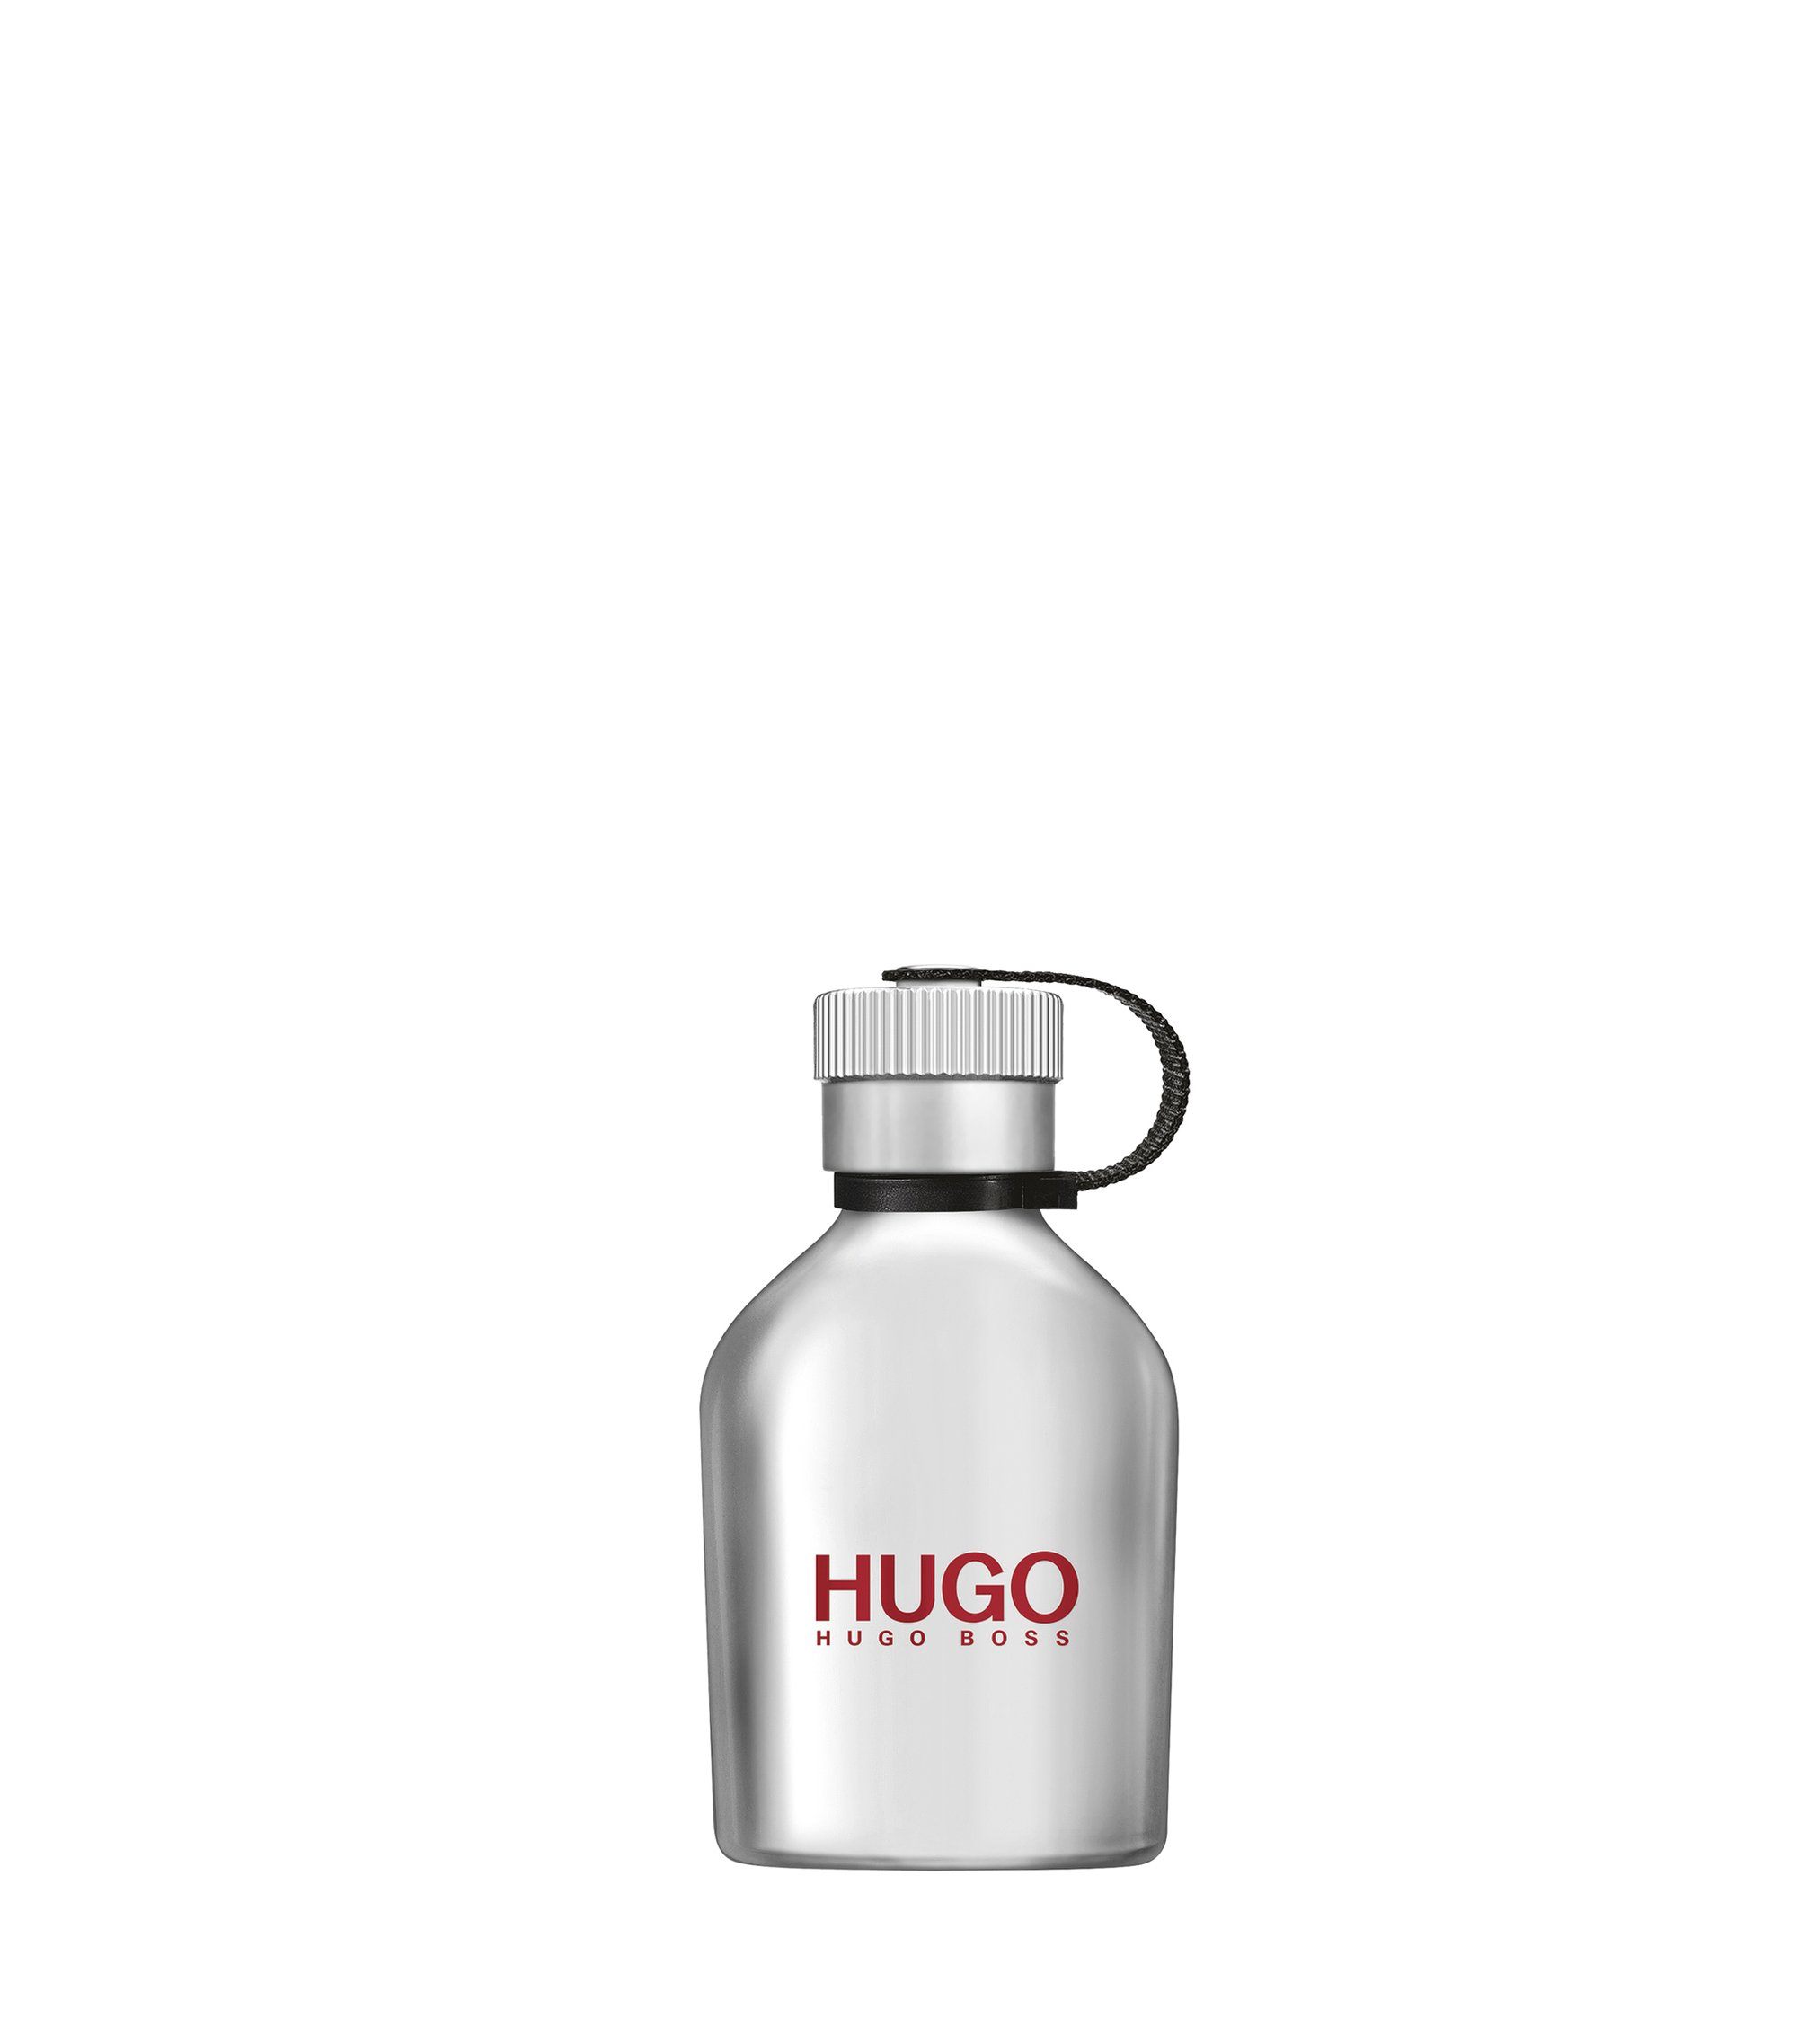 HUGO Iced Eau de Toilette 75 ml, Assorted-Pre-Pack